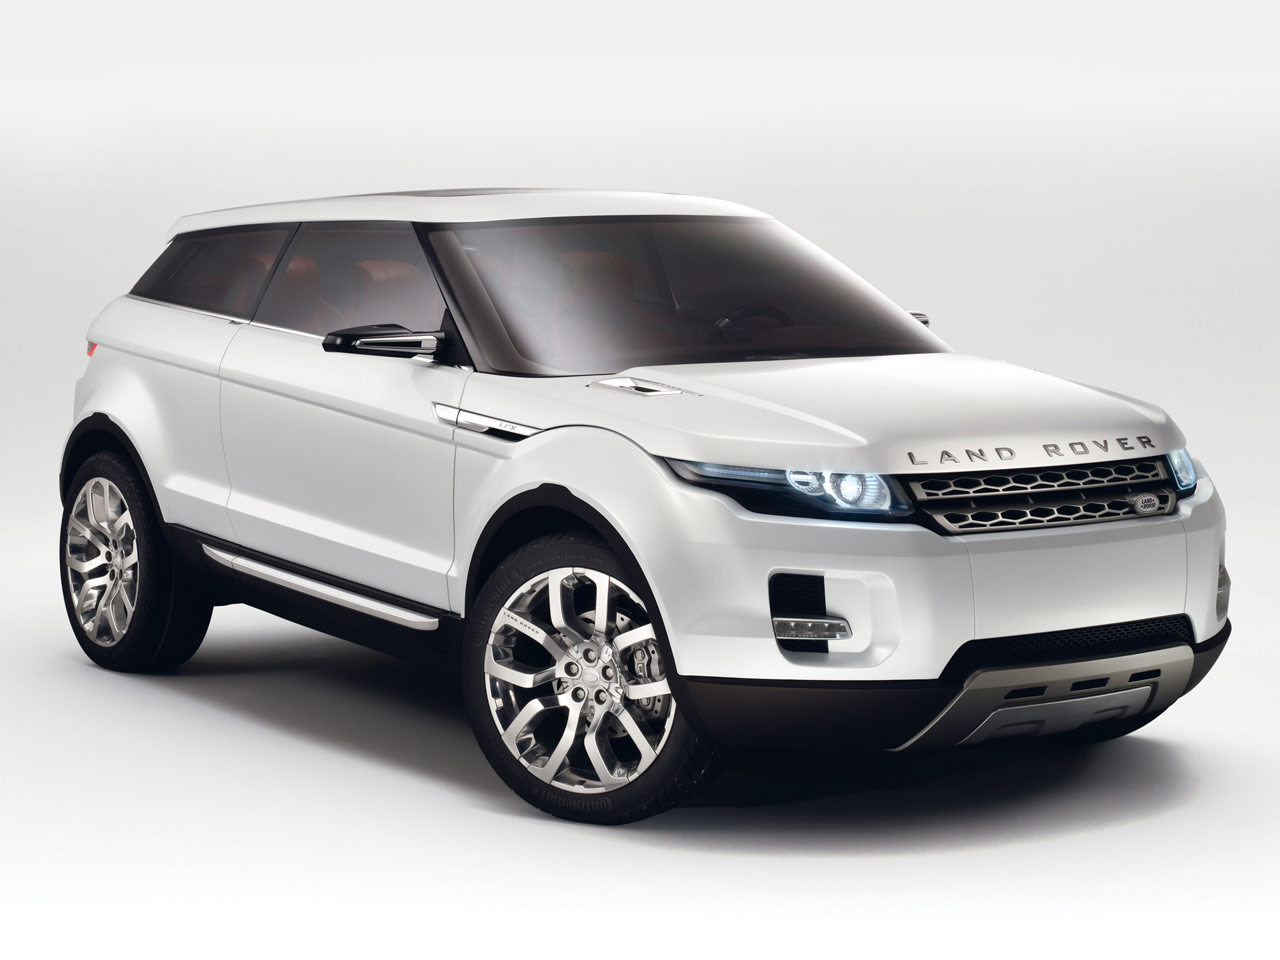 Land Rover Range Rover Evoque Review Free Download Image